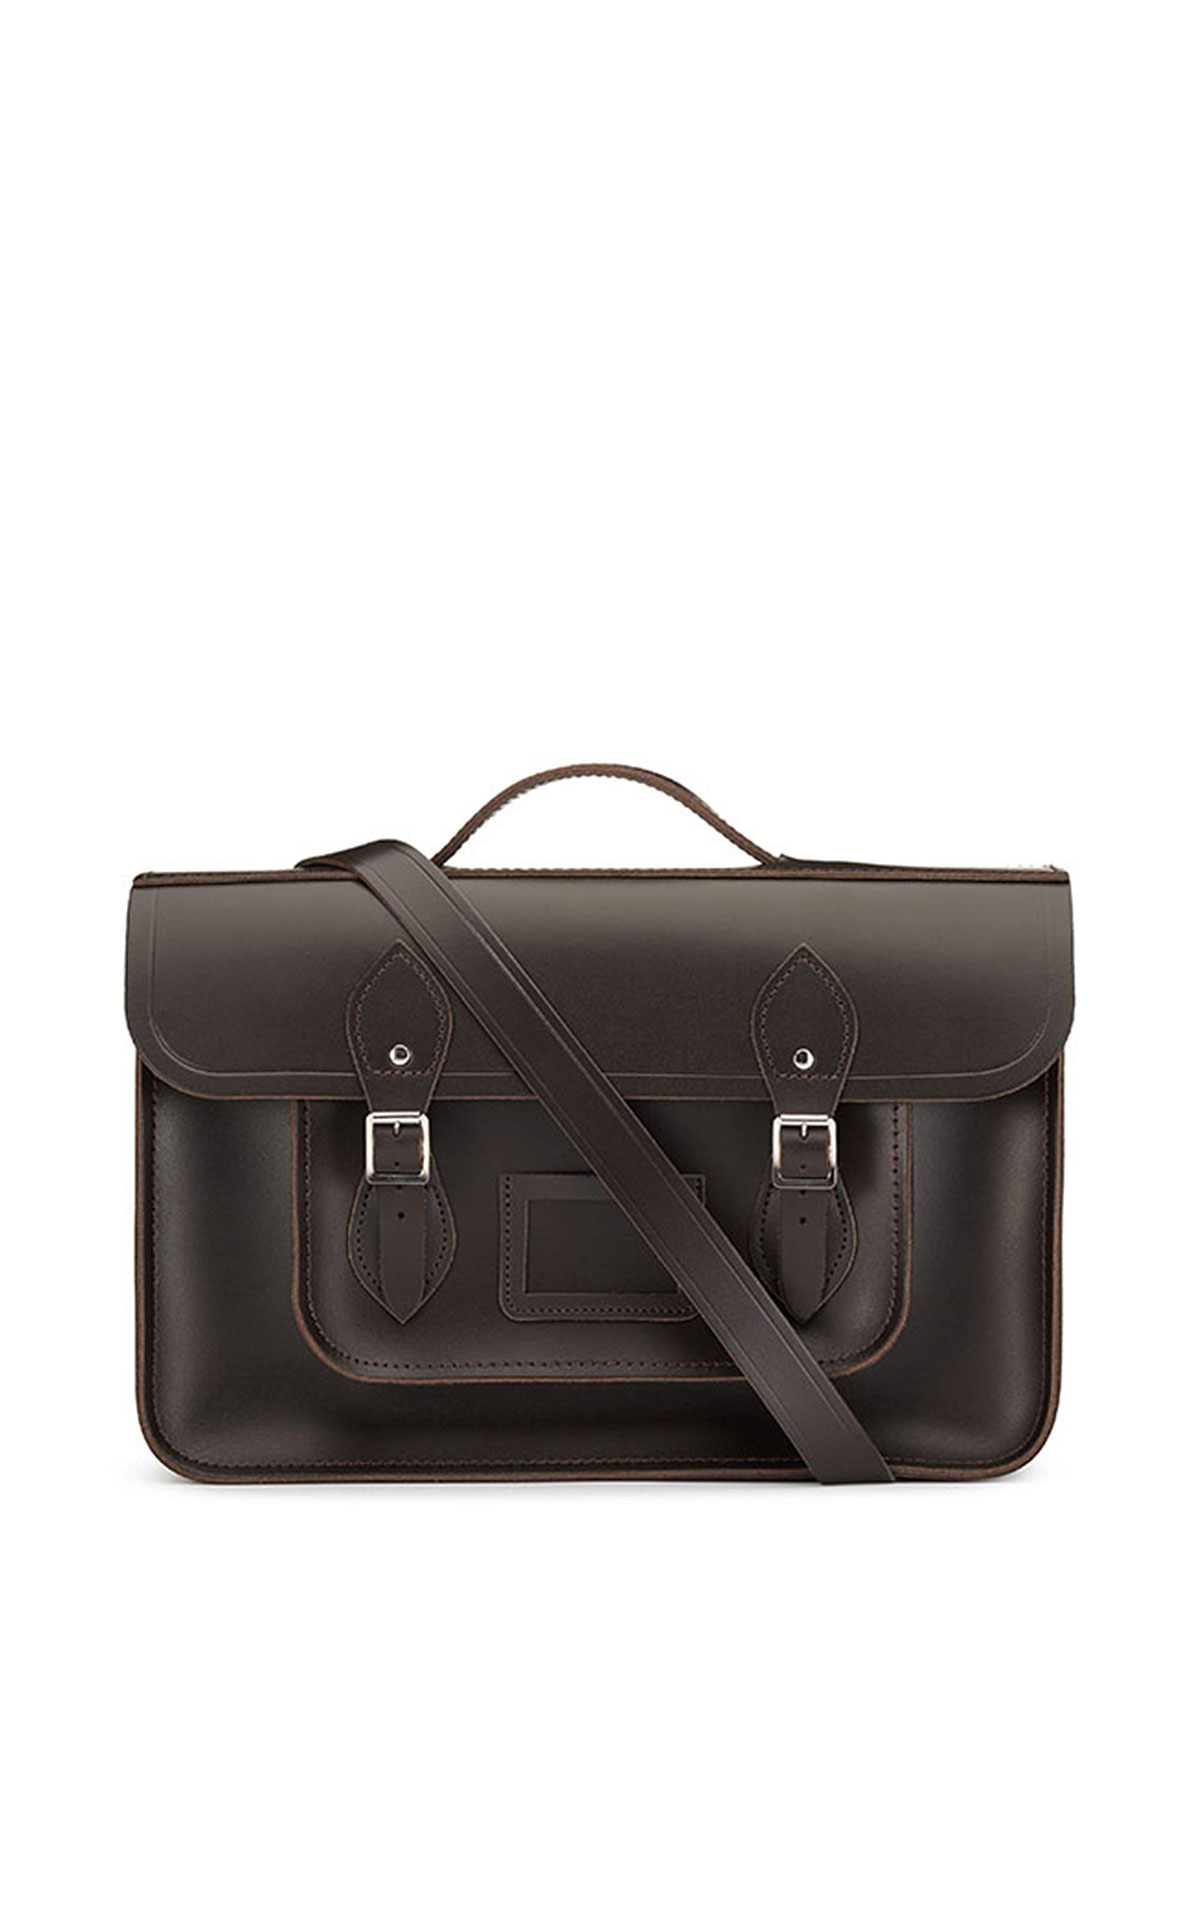 The Cambridge Satchel Company Classic batchel dark brown from Bicester Village